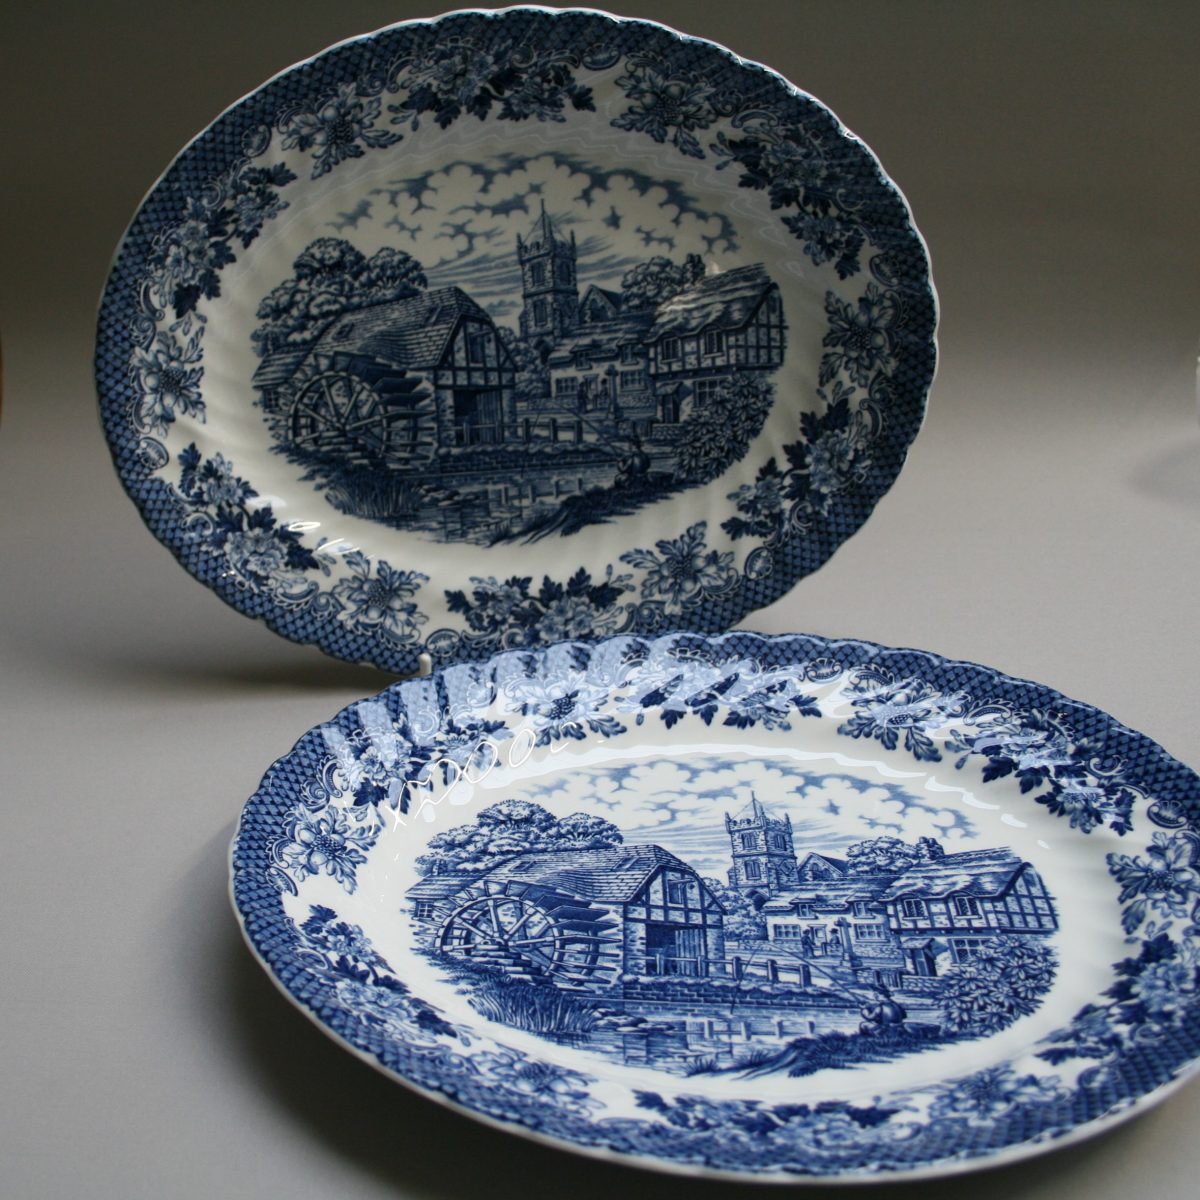 pair of blue and white oval serving dishes with the Merrie olde England design/williamsantiques